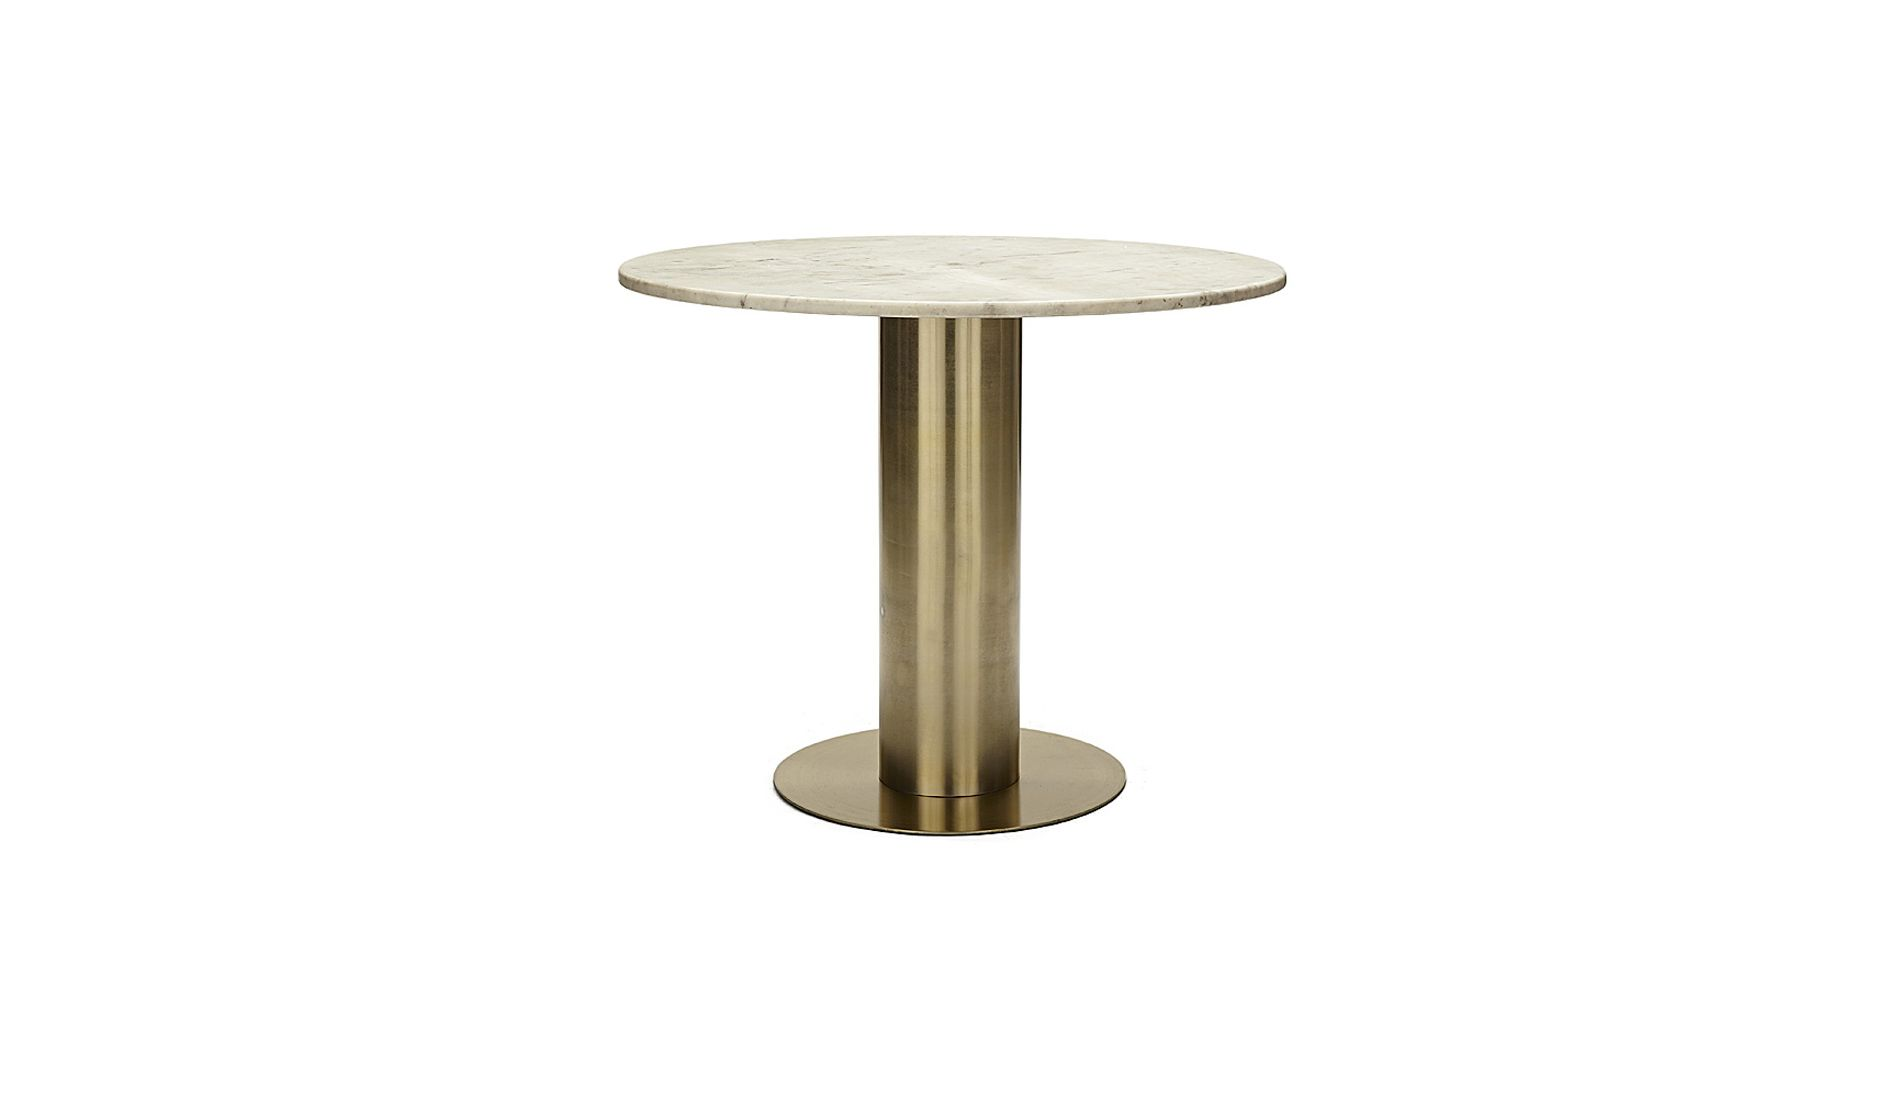 Tom Dixon Couchtisch Tom Dixon Tube Screw Marmor Tischplatte Mit Messingfuß